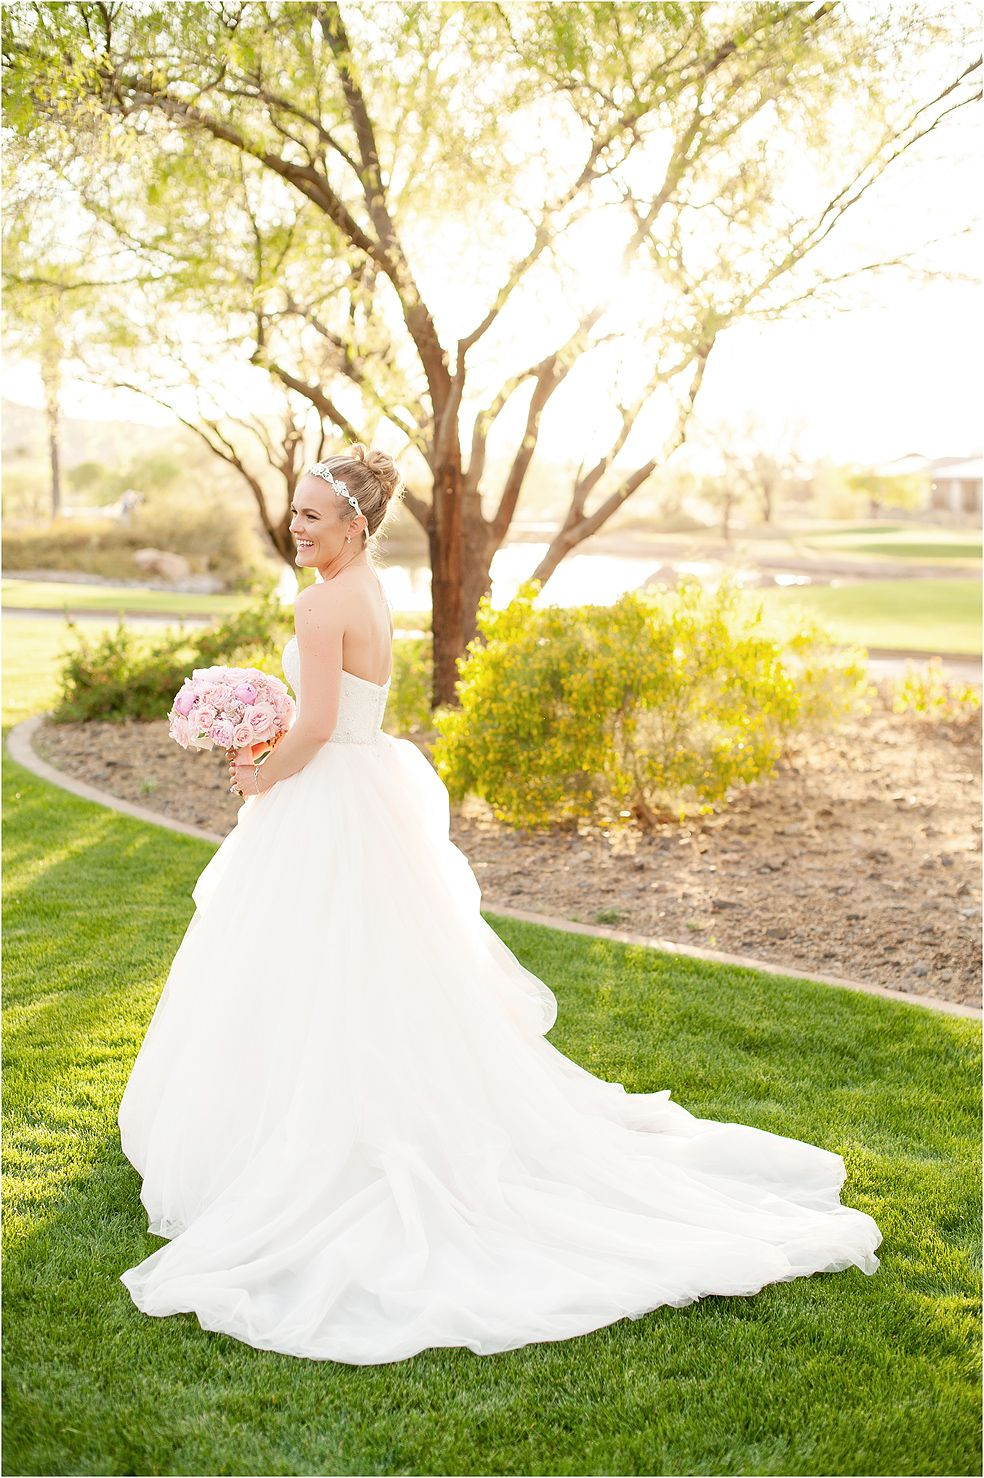 Romantic strapless wedding gown in a light blush color with bridal